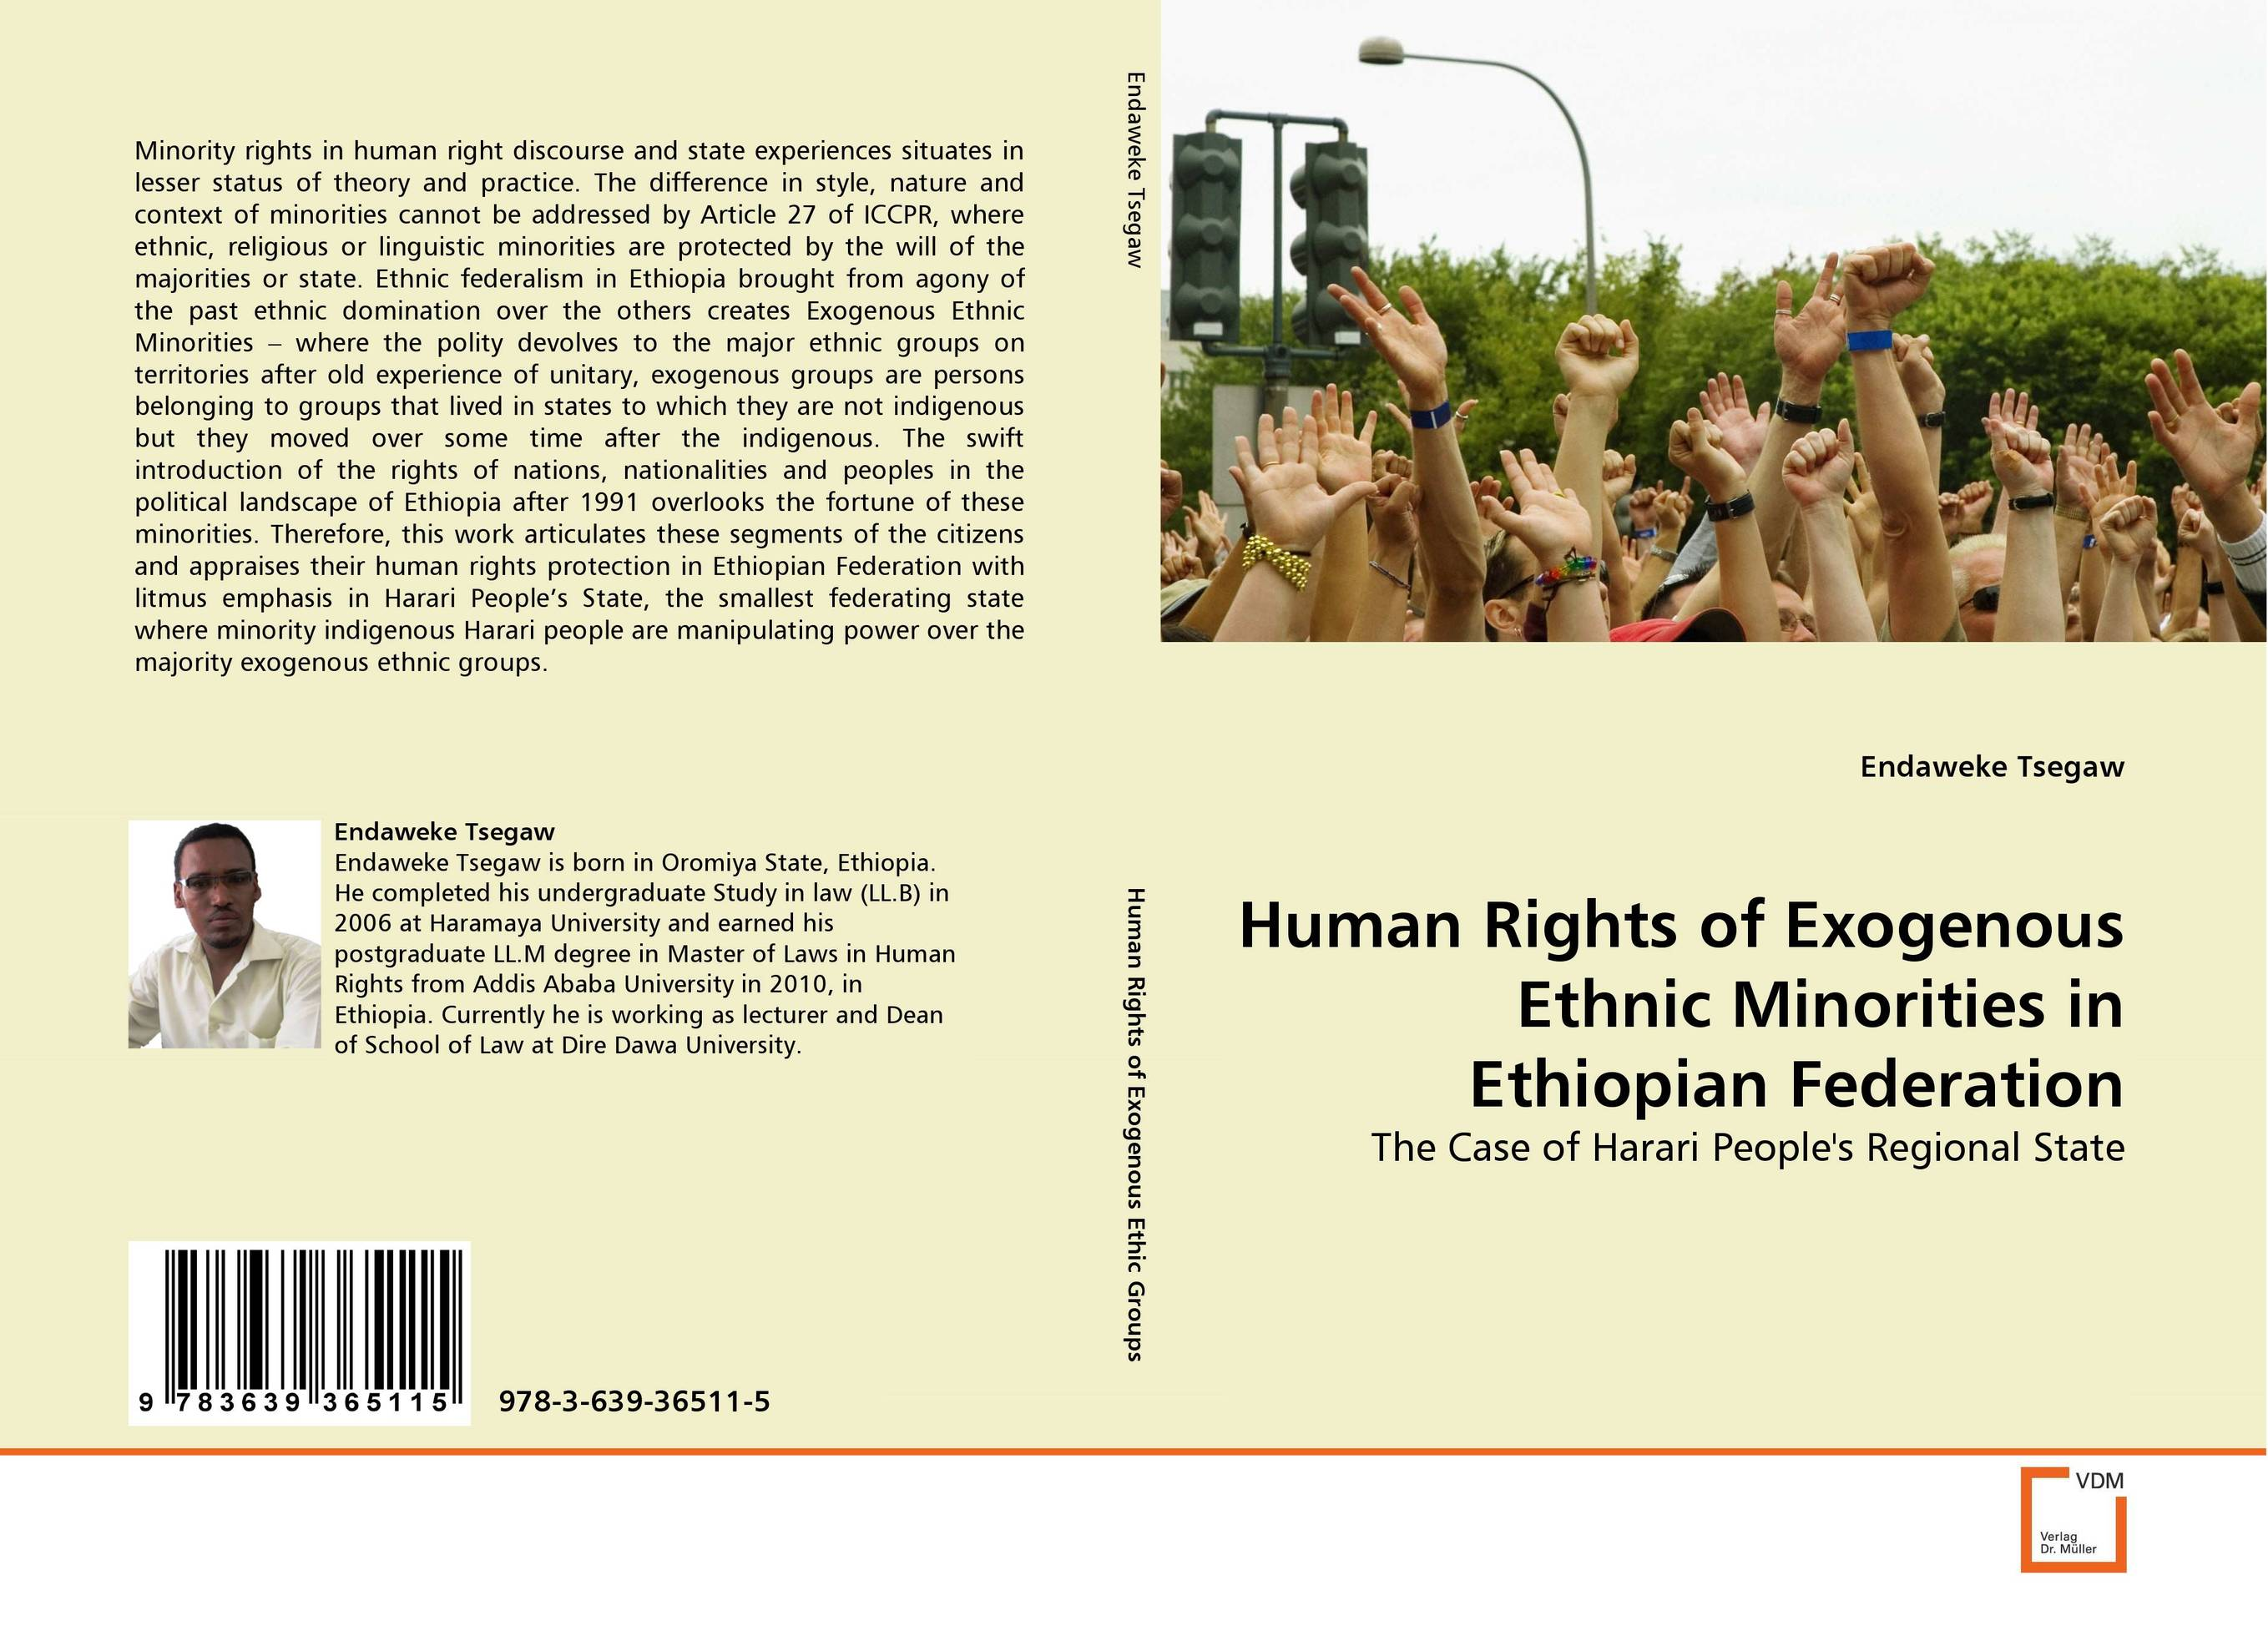 Human Rights of Exogenous Ethnic Minorities in Ethiopian Federation 30 pcs lot heteromorphism the nutcracker postcard greeting card christmas card birthday card gift cards free shipping